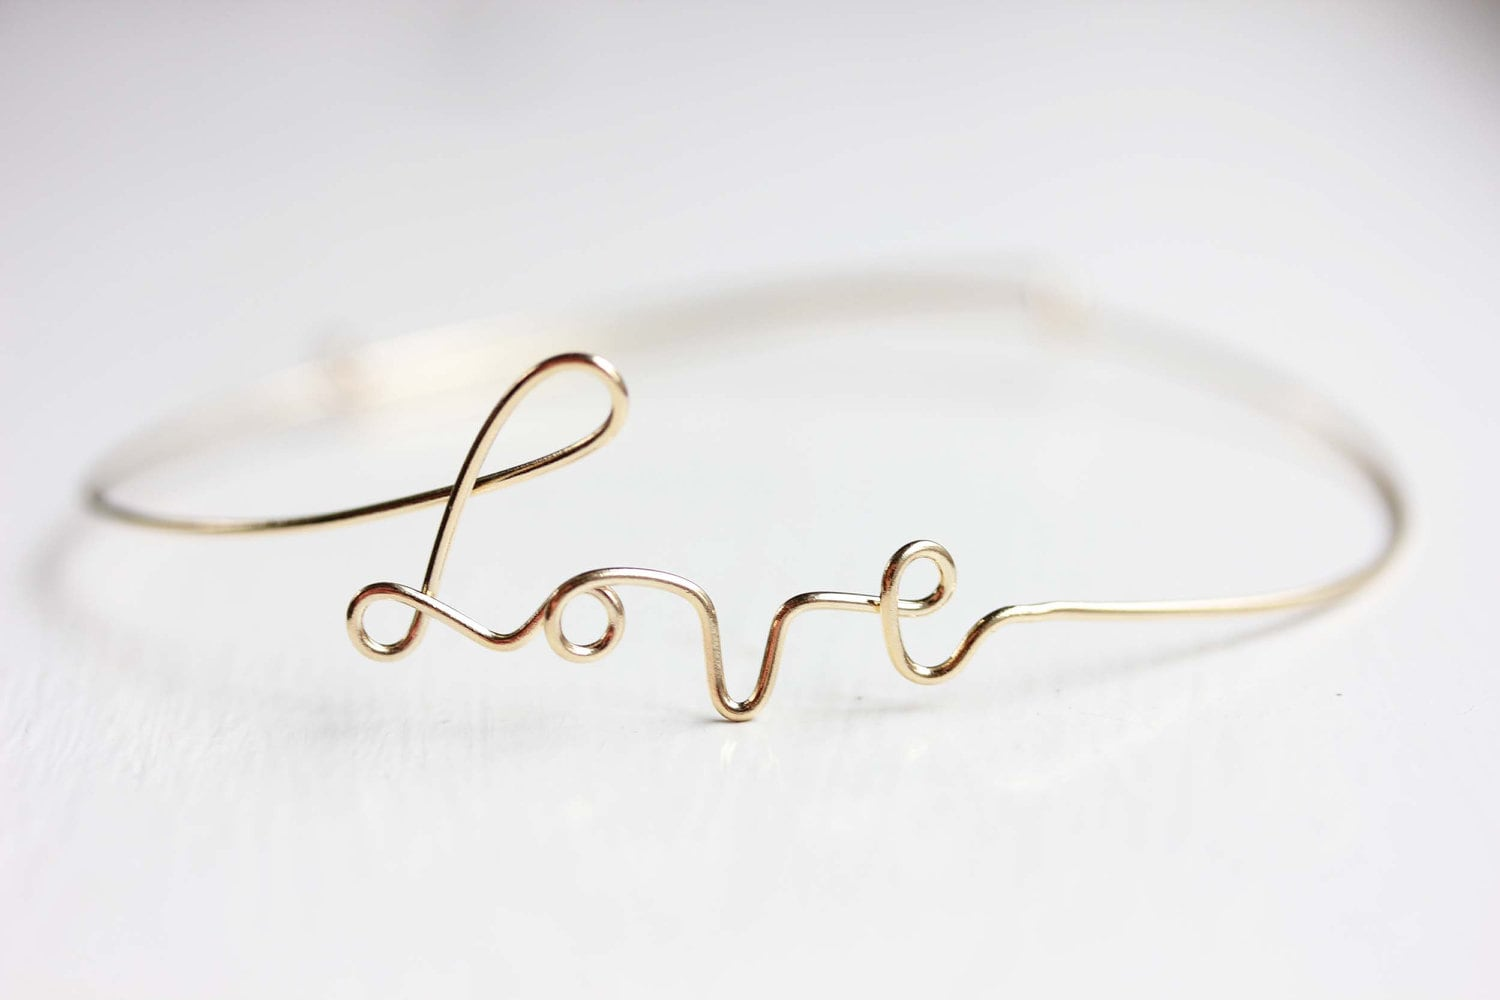 priced each jewelry bangles bracelets for bangle and love pin